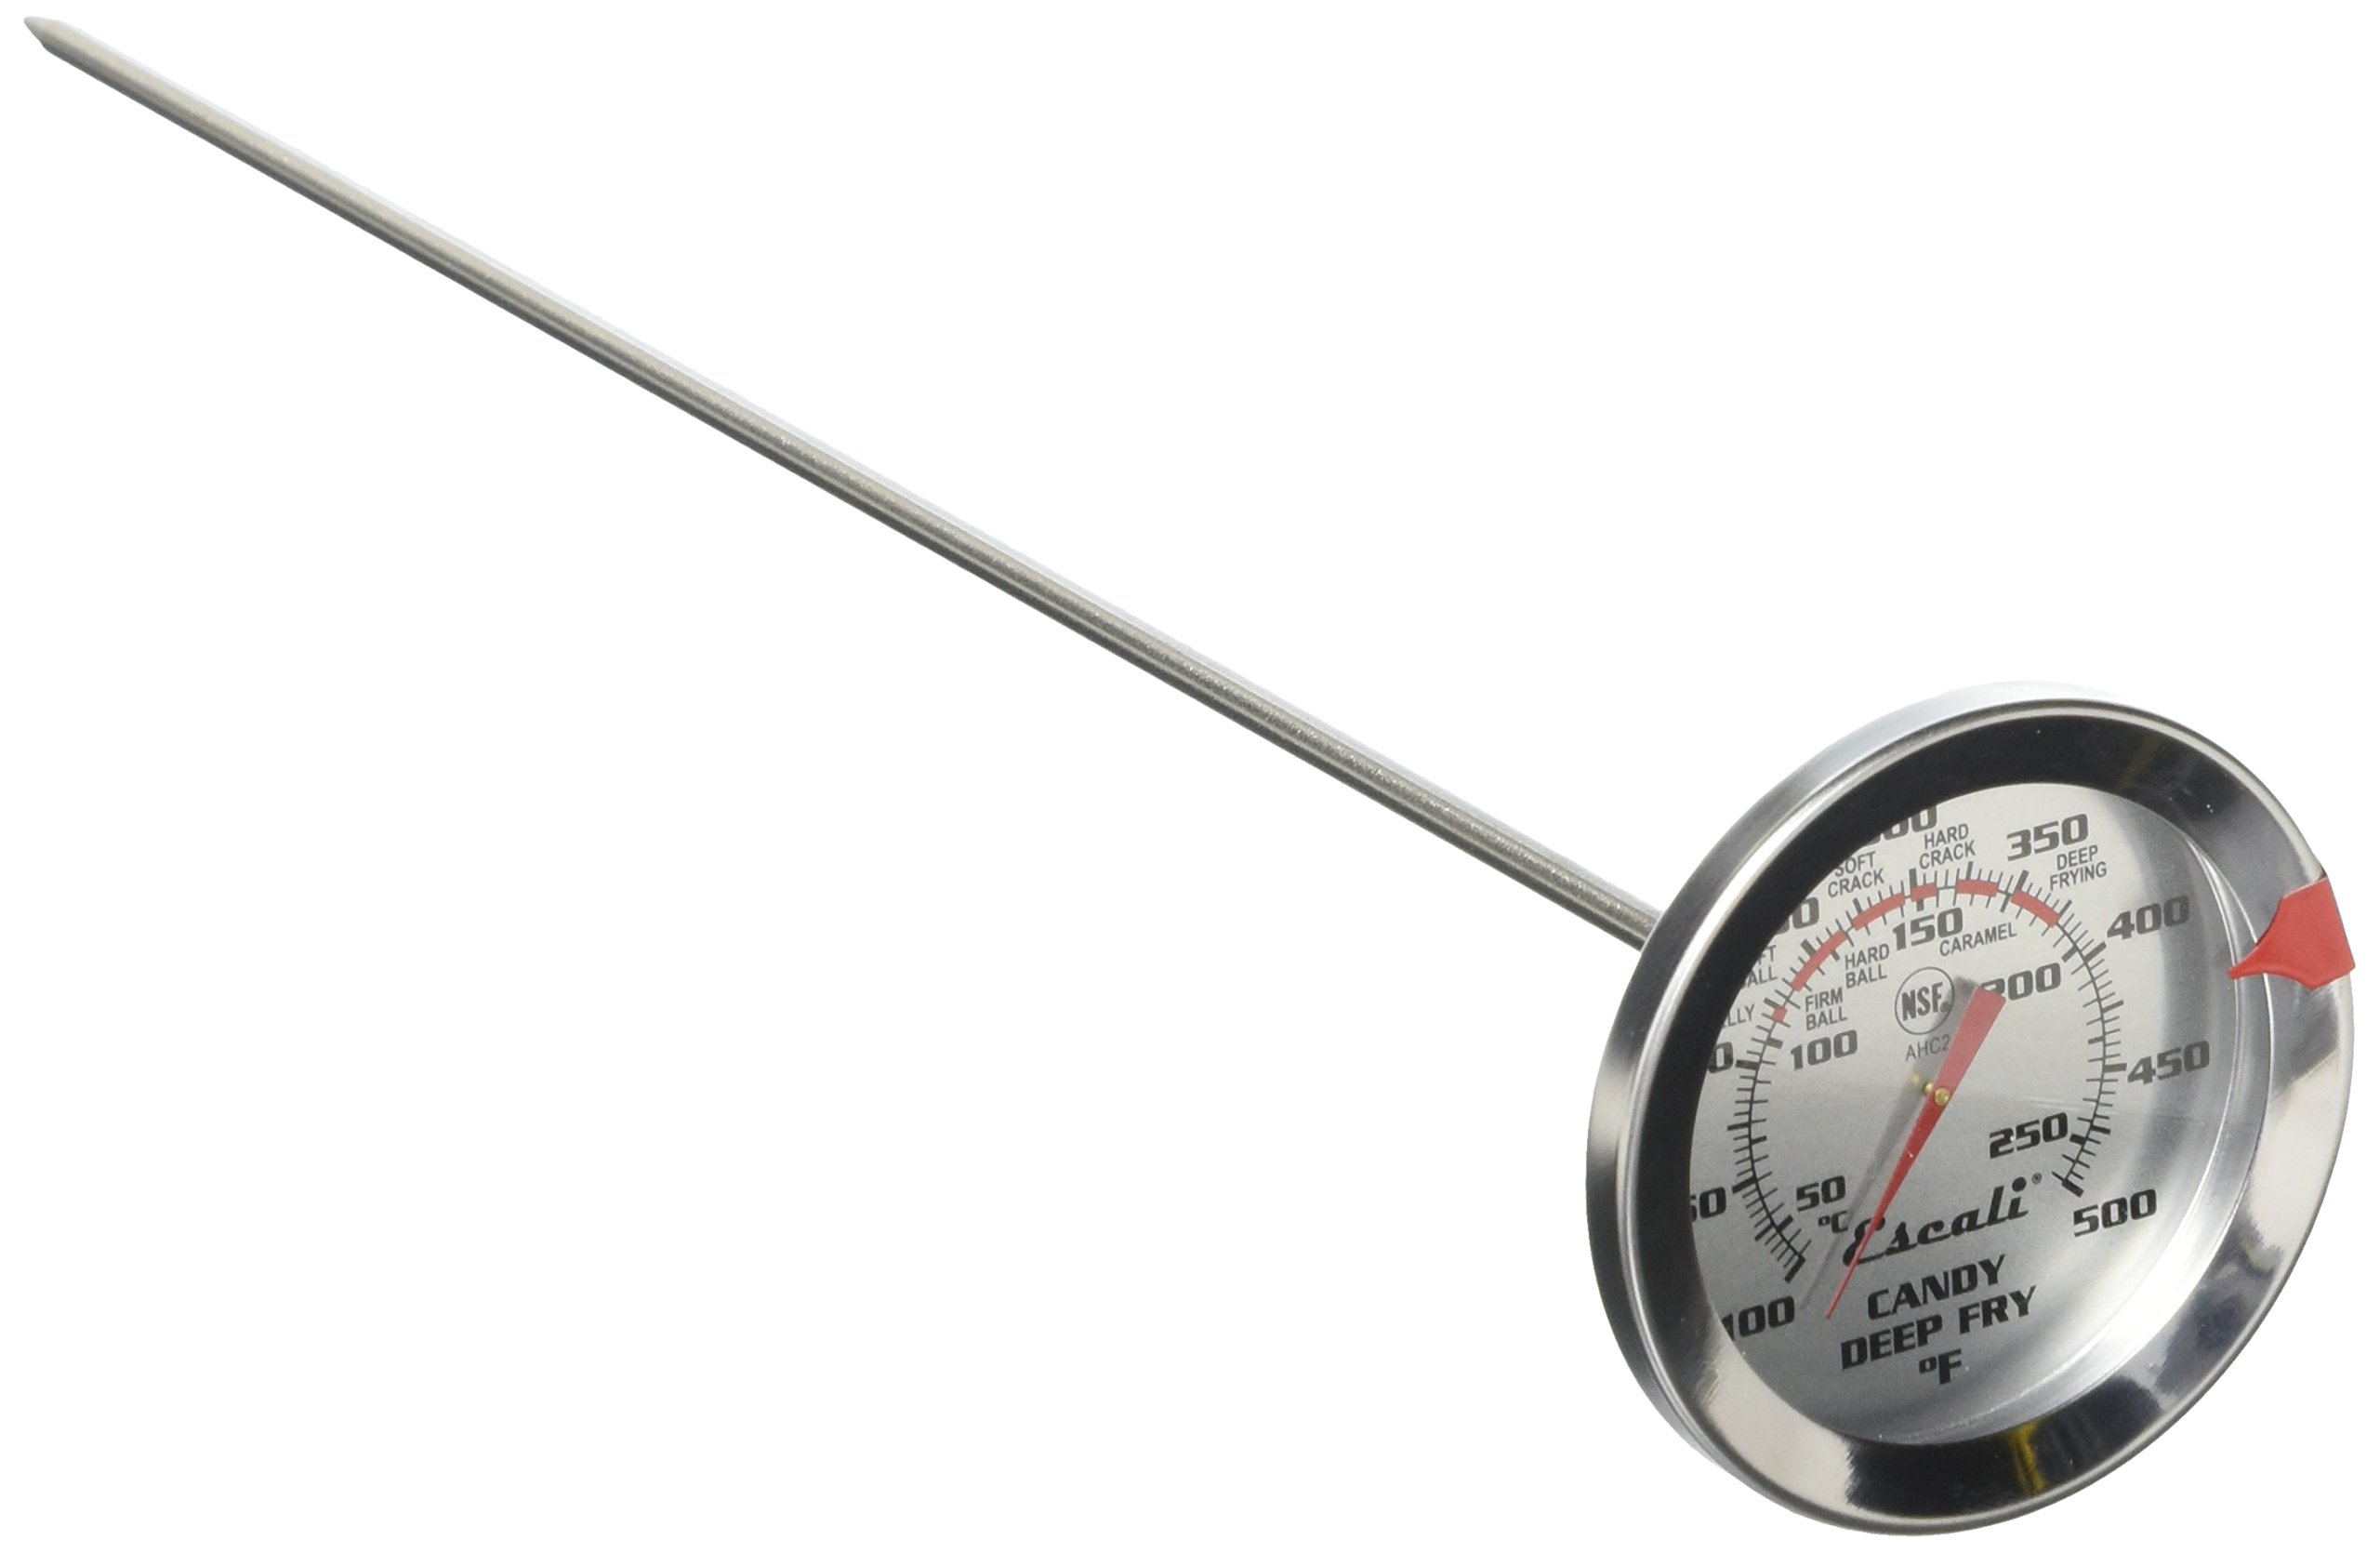 Escali AHC2 NSF Listed Candy/Deep Fry Thermometer with 12'' Probe, Silver